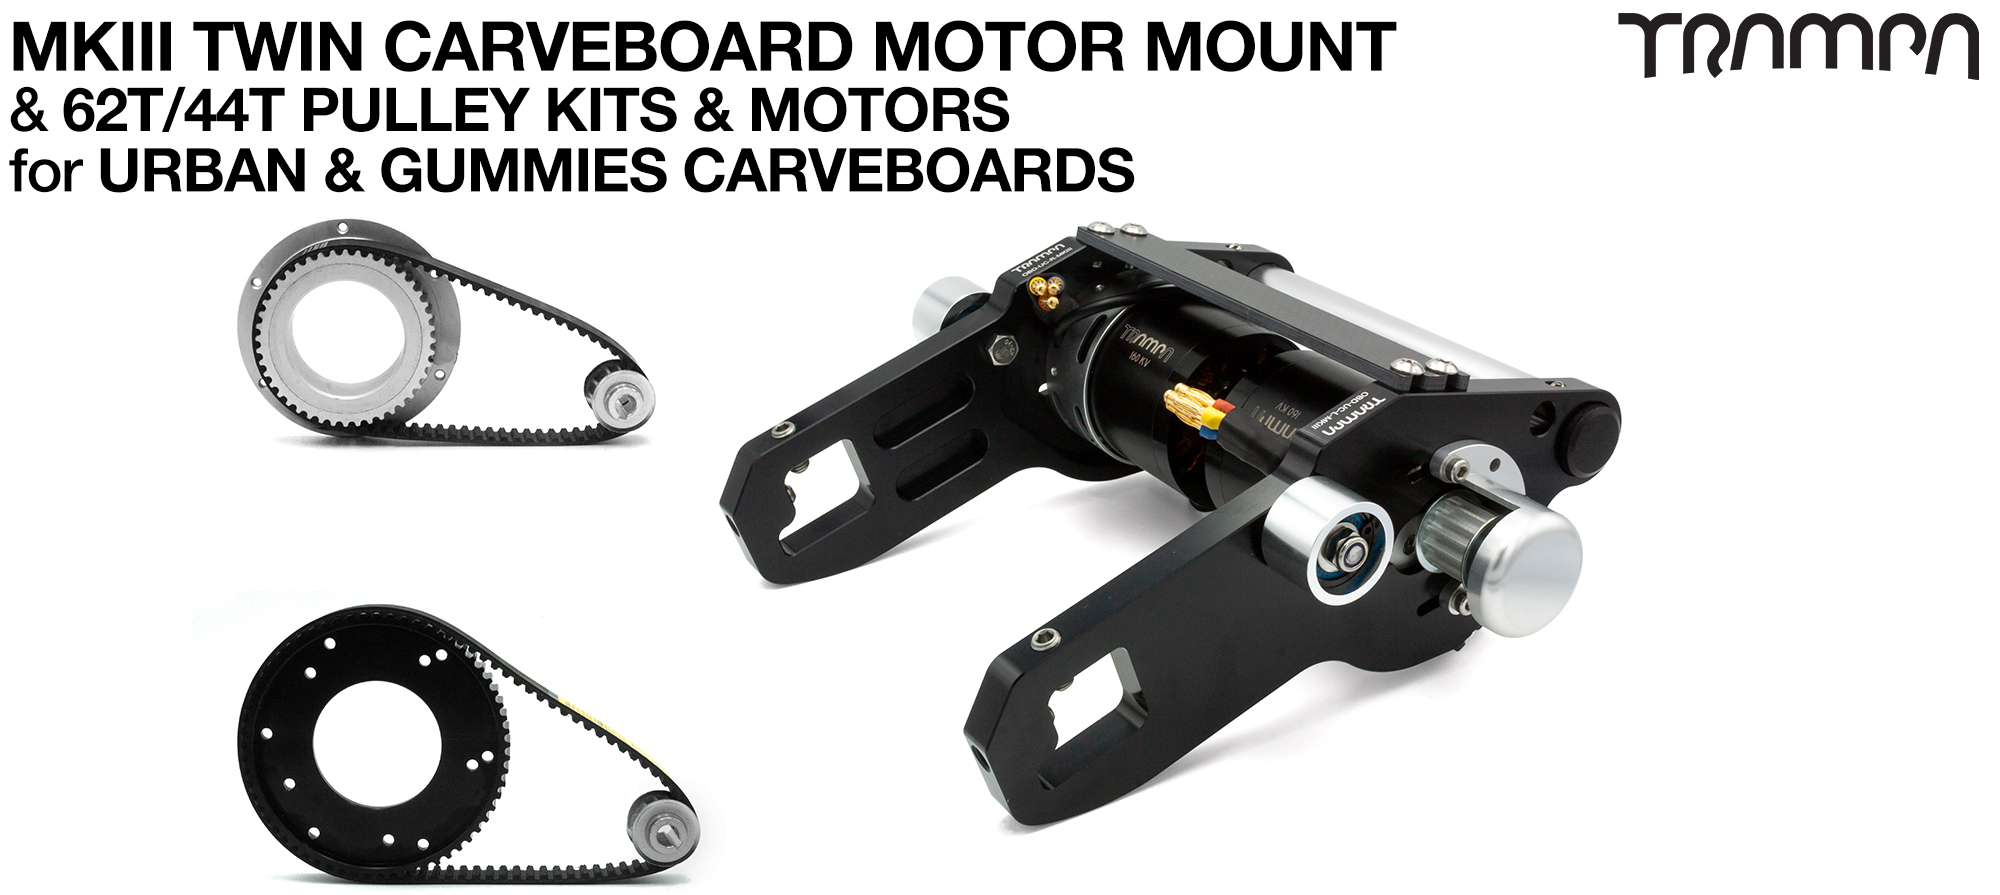 MkIII 2in1 CARVEBOARD Motormount with 44 tooth GUMMY & 62 tooth URBAN Pulleys & TRAMPA Motor - TWIN